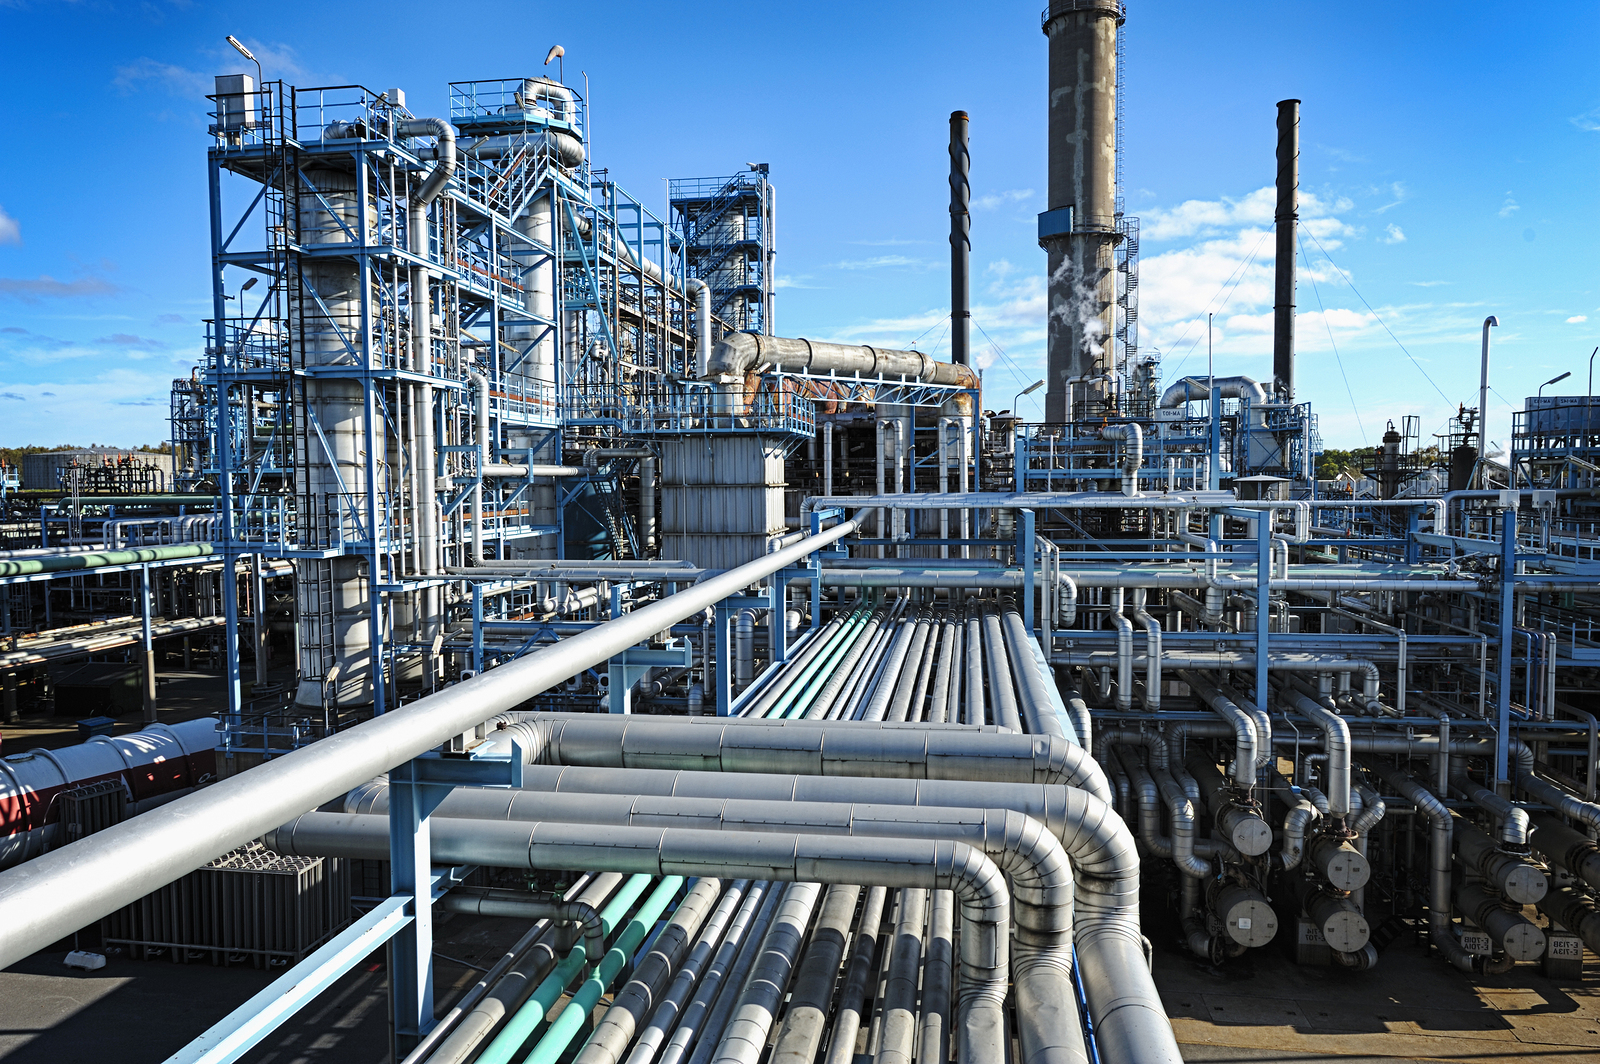 Government set to start talks on merging 13 state oil companies to create behemoth